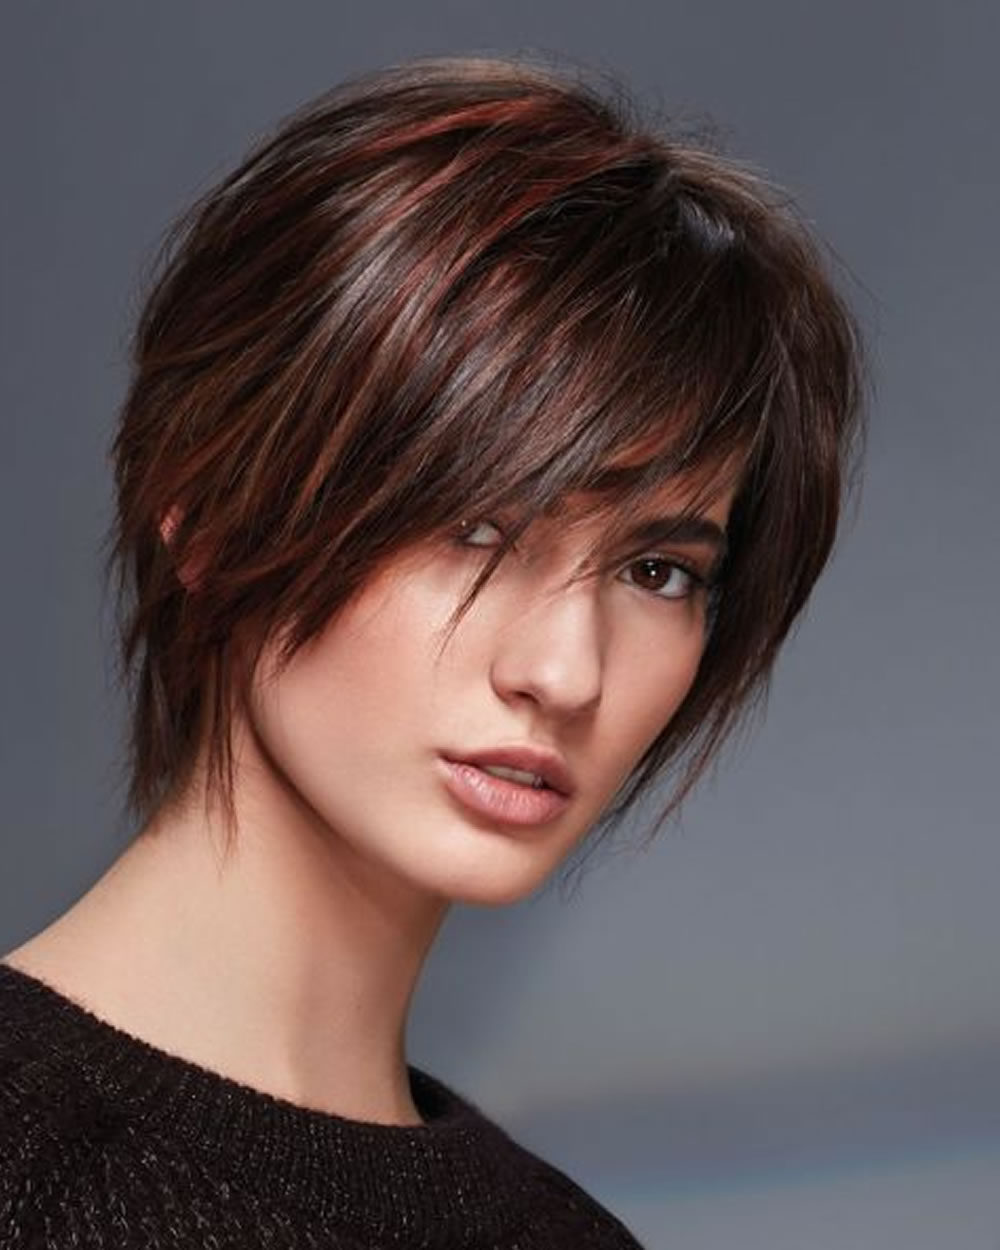 Top 20 Matchless Short Haircuts For Women With Round Faces 2018 2019 Intended For Short Haircuts For A Round Face (View 12 of 25)